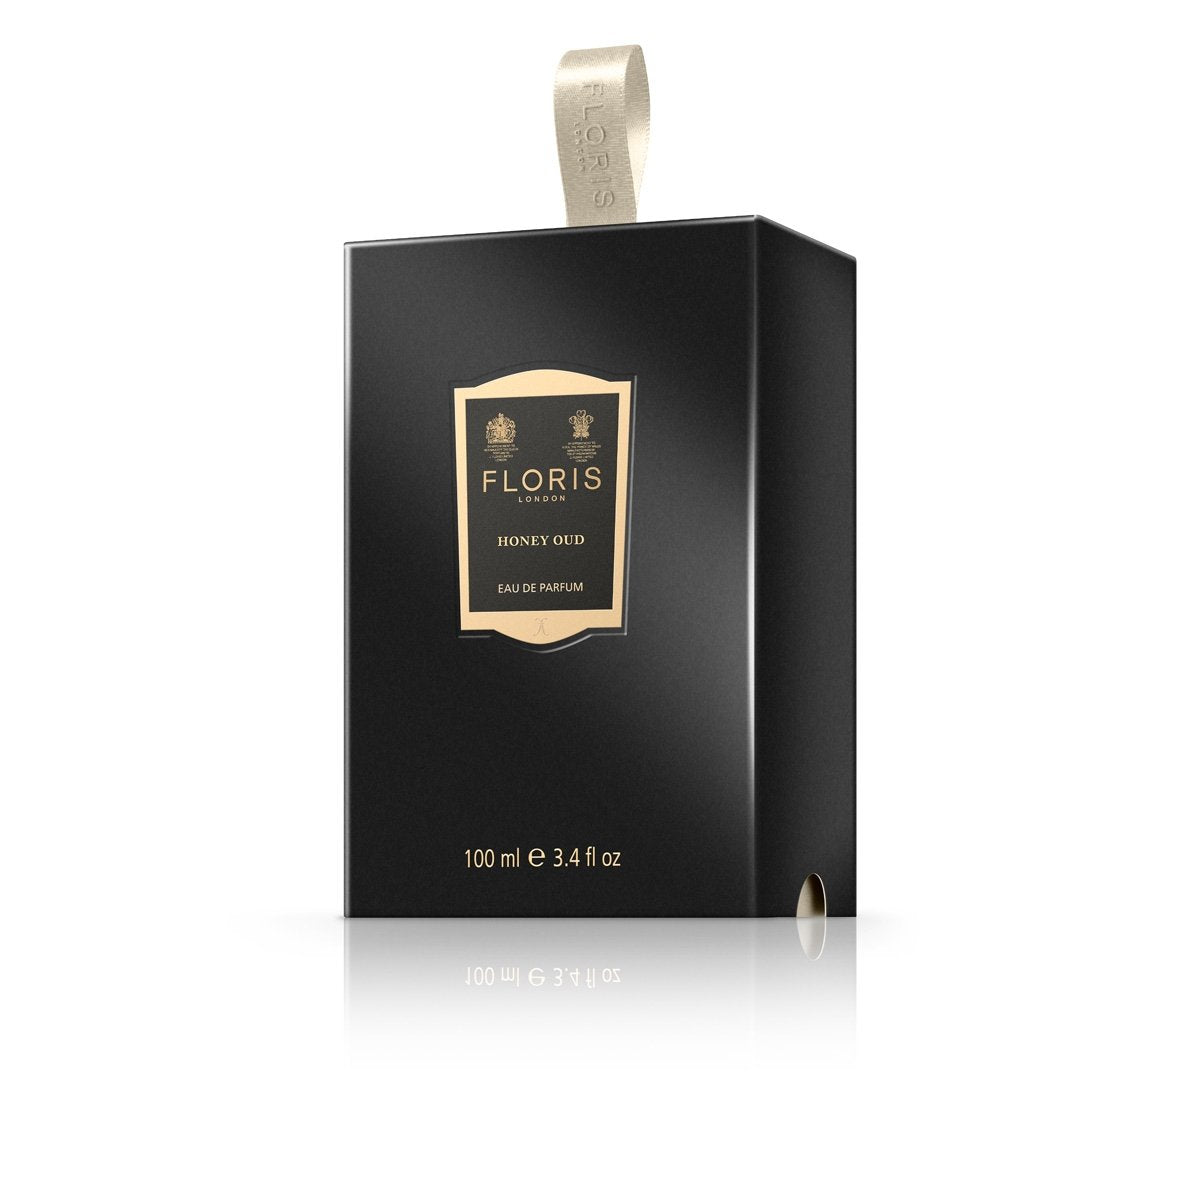 Honey Oud - Eau de Parfum 100ml